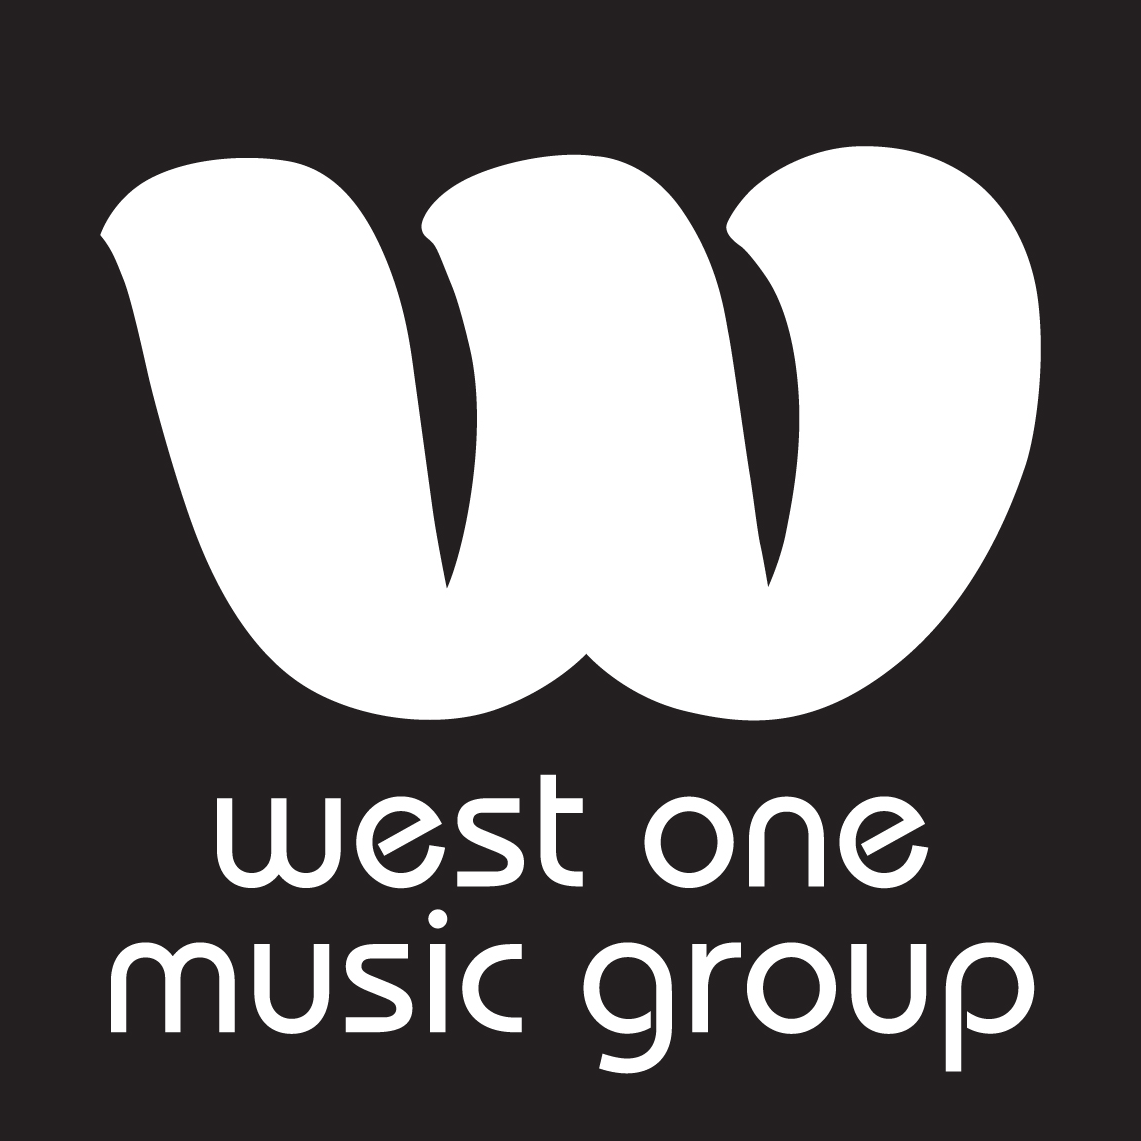 West One Music Group Wikipedia